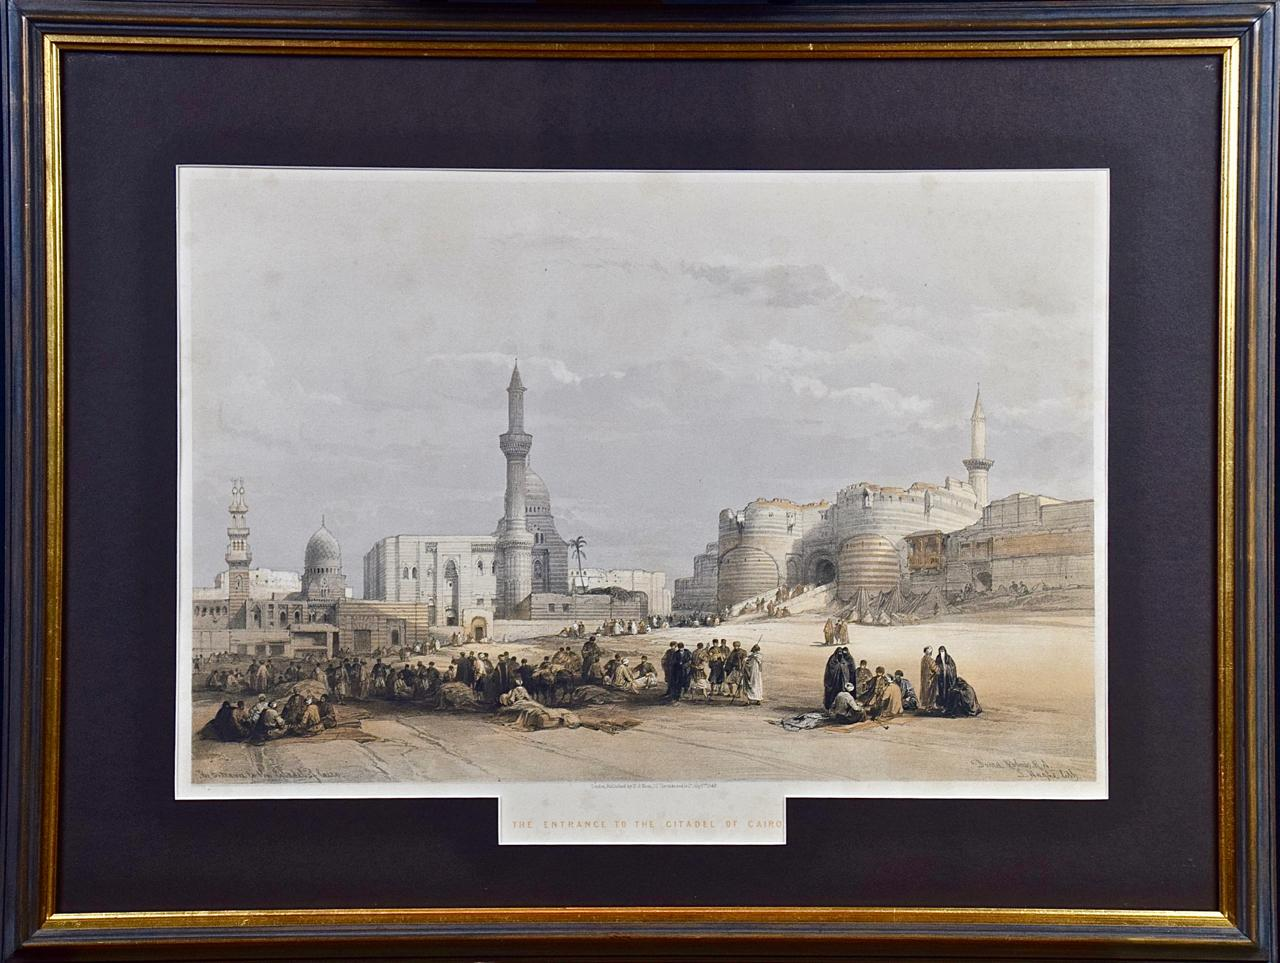 """David Roberts' 19th C. Hand Colored Lithograph, """"Entrance to the Citadel Cairo"""""""